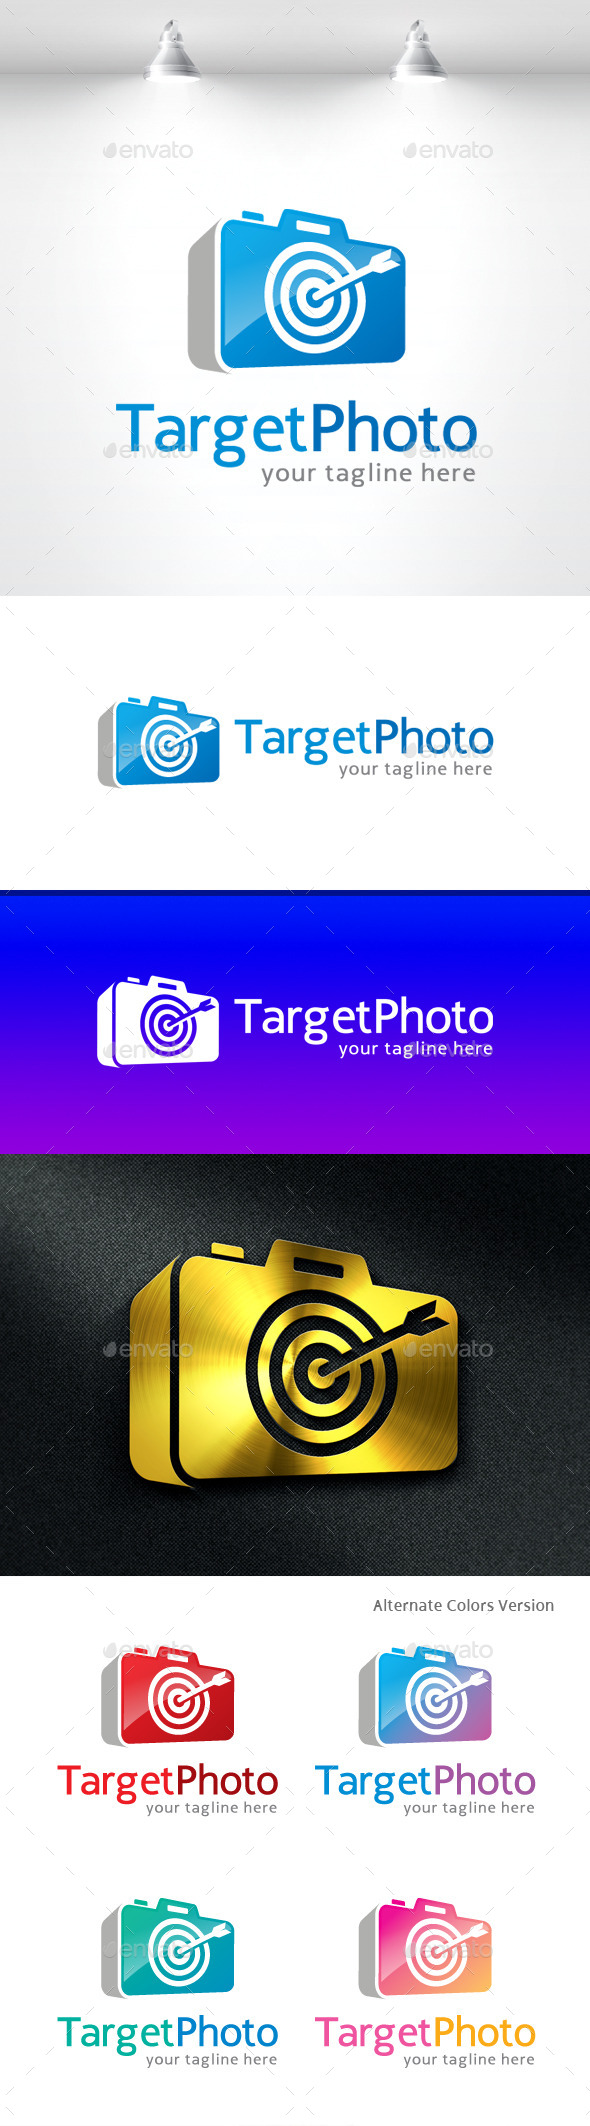 GraphicRiver Target Photo Logo Template 11531221